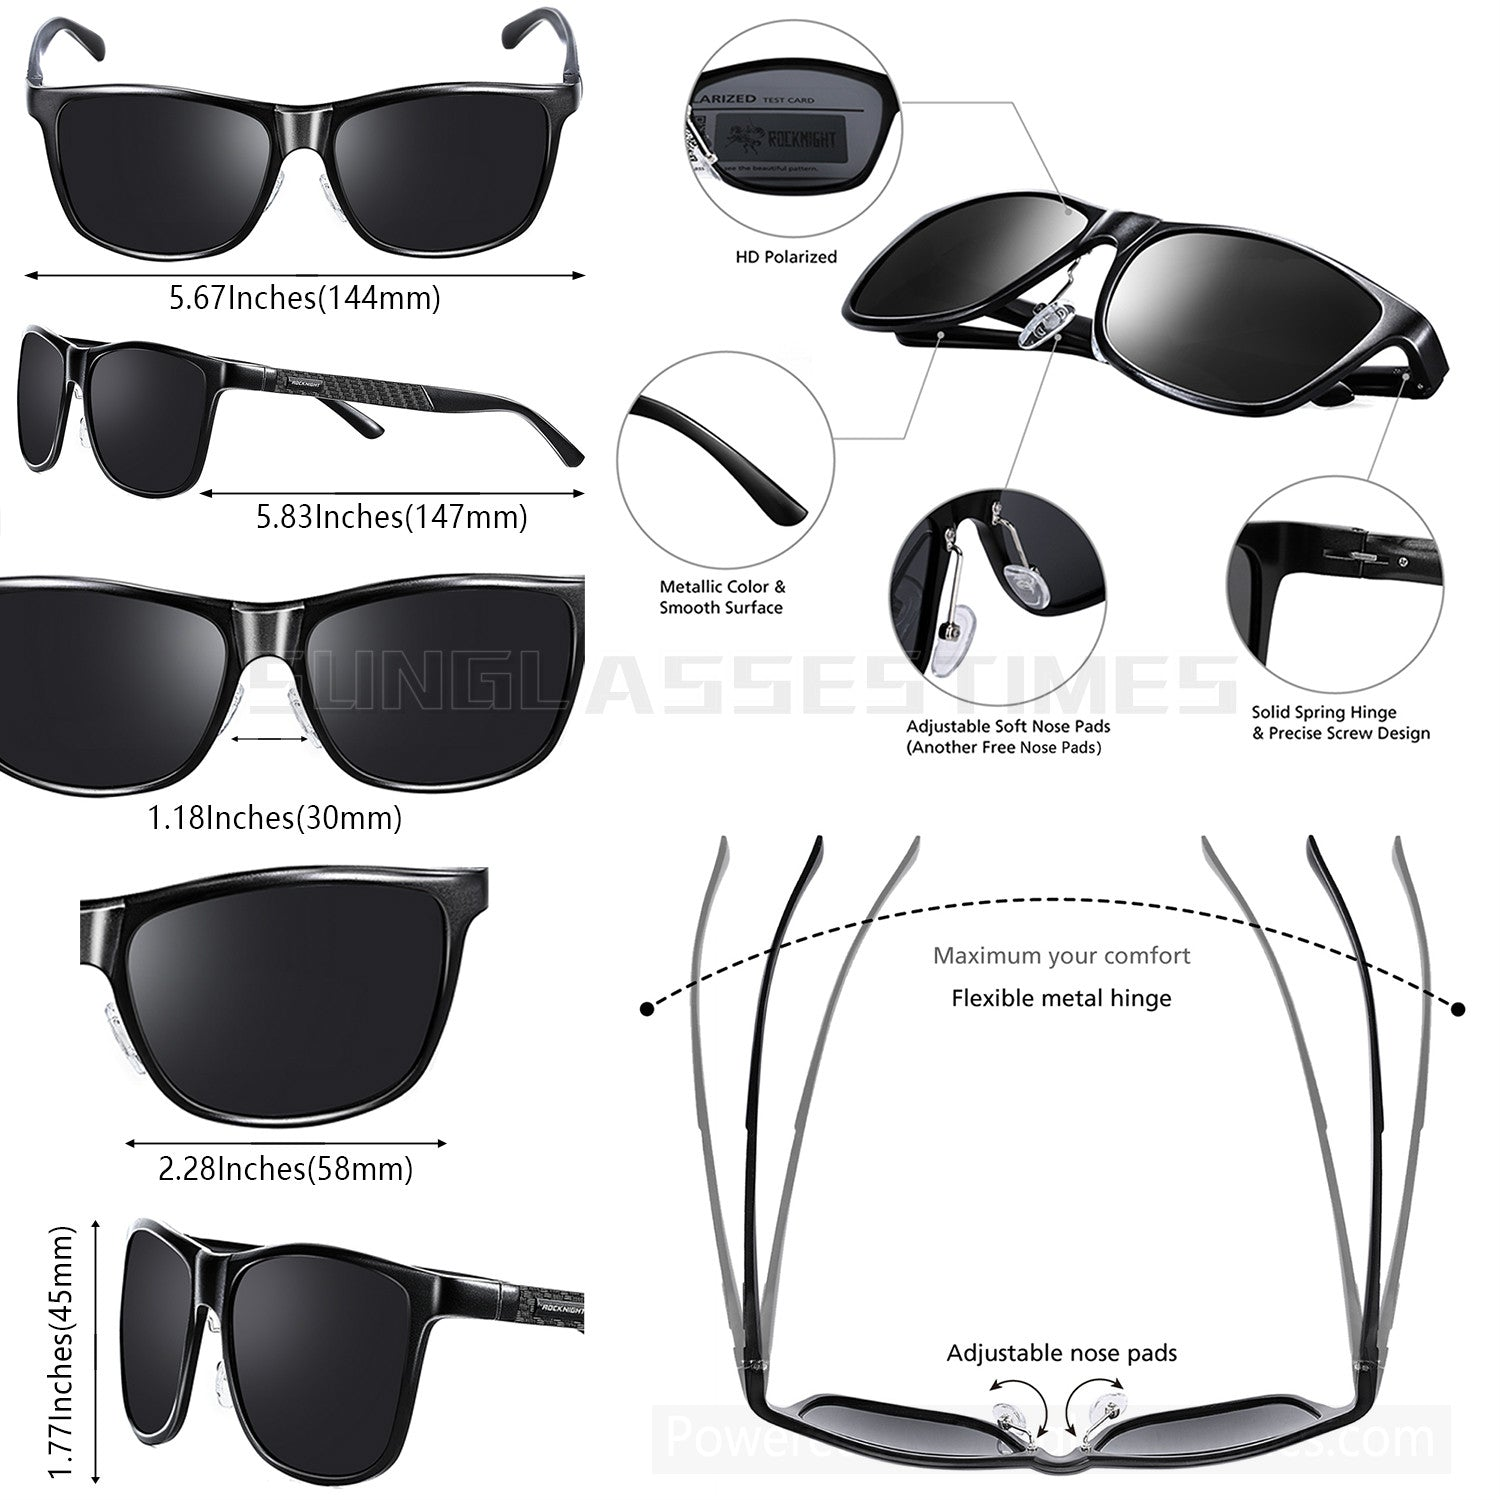 Mg Al Sunglasses Polarized For Traveling Fishing biking